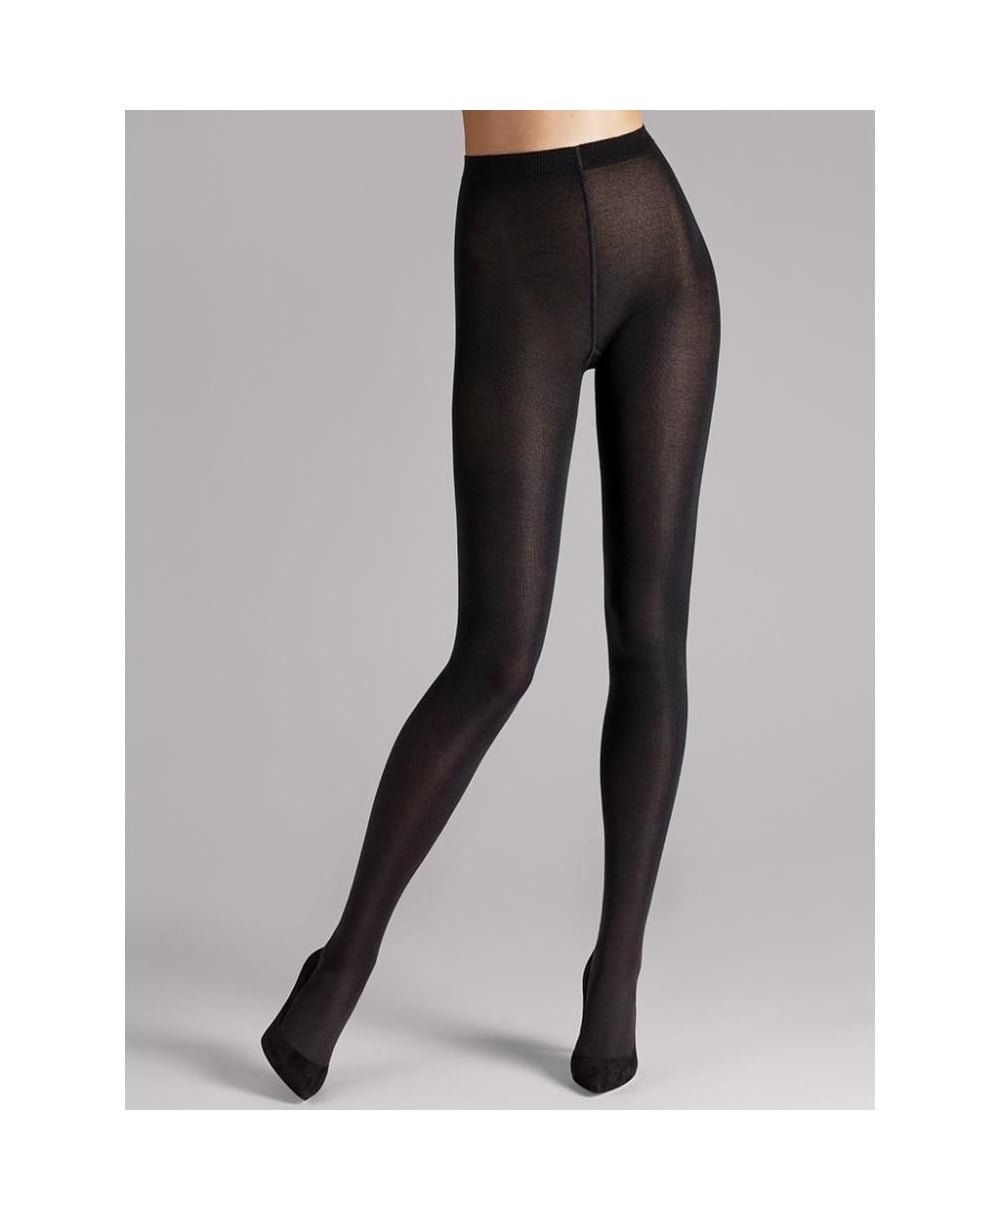 52142d3dca7 Wolford Cashmere Silk Tights - Tights from luxury-legs.com UK